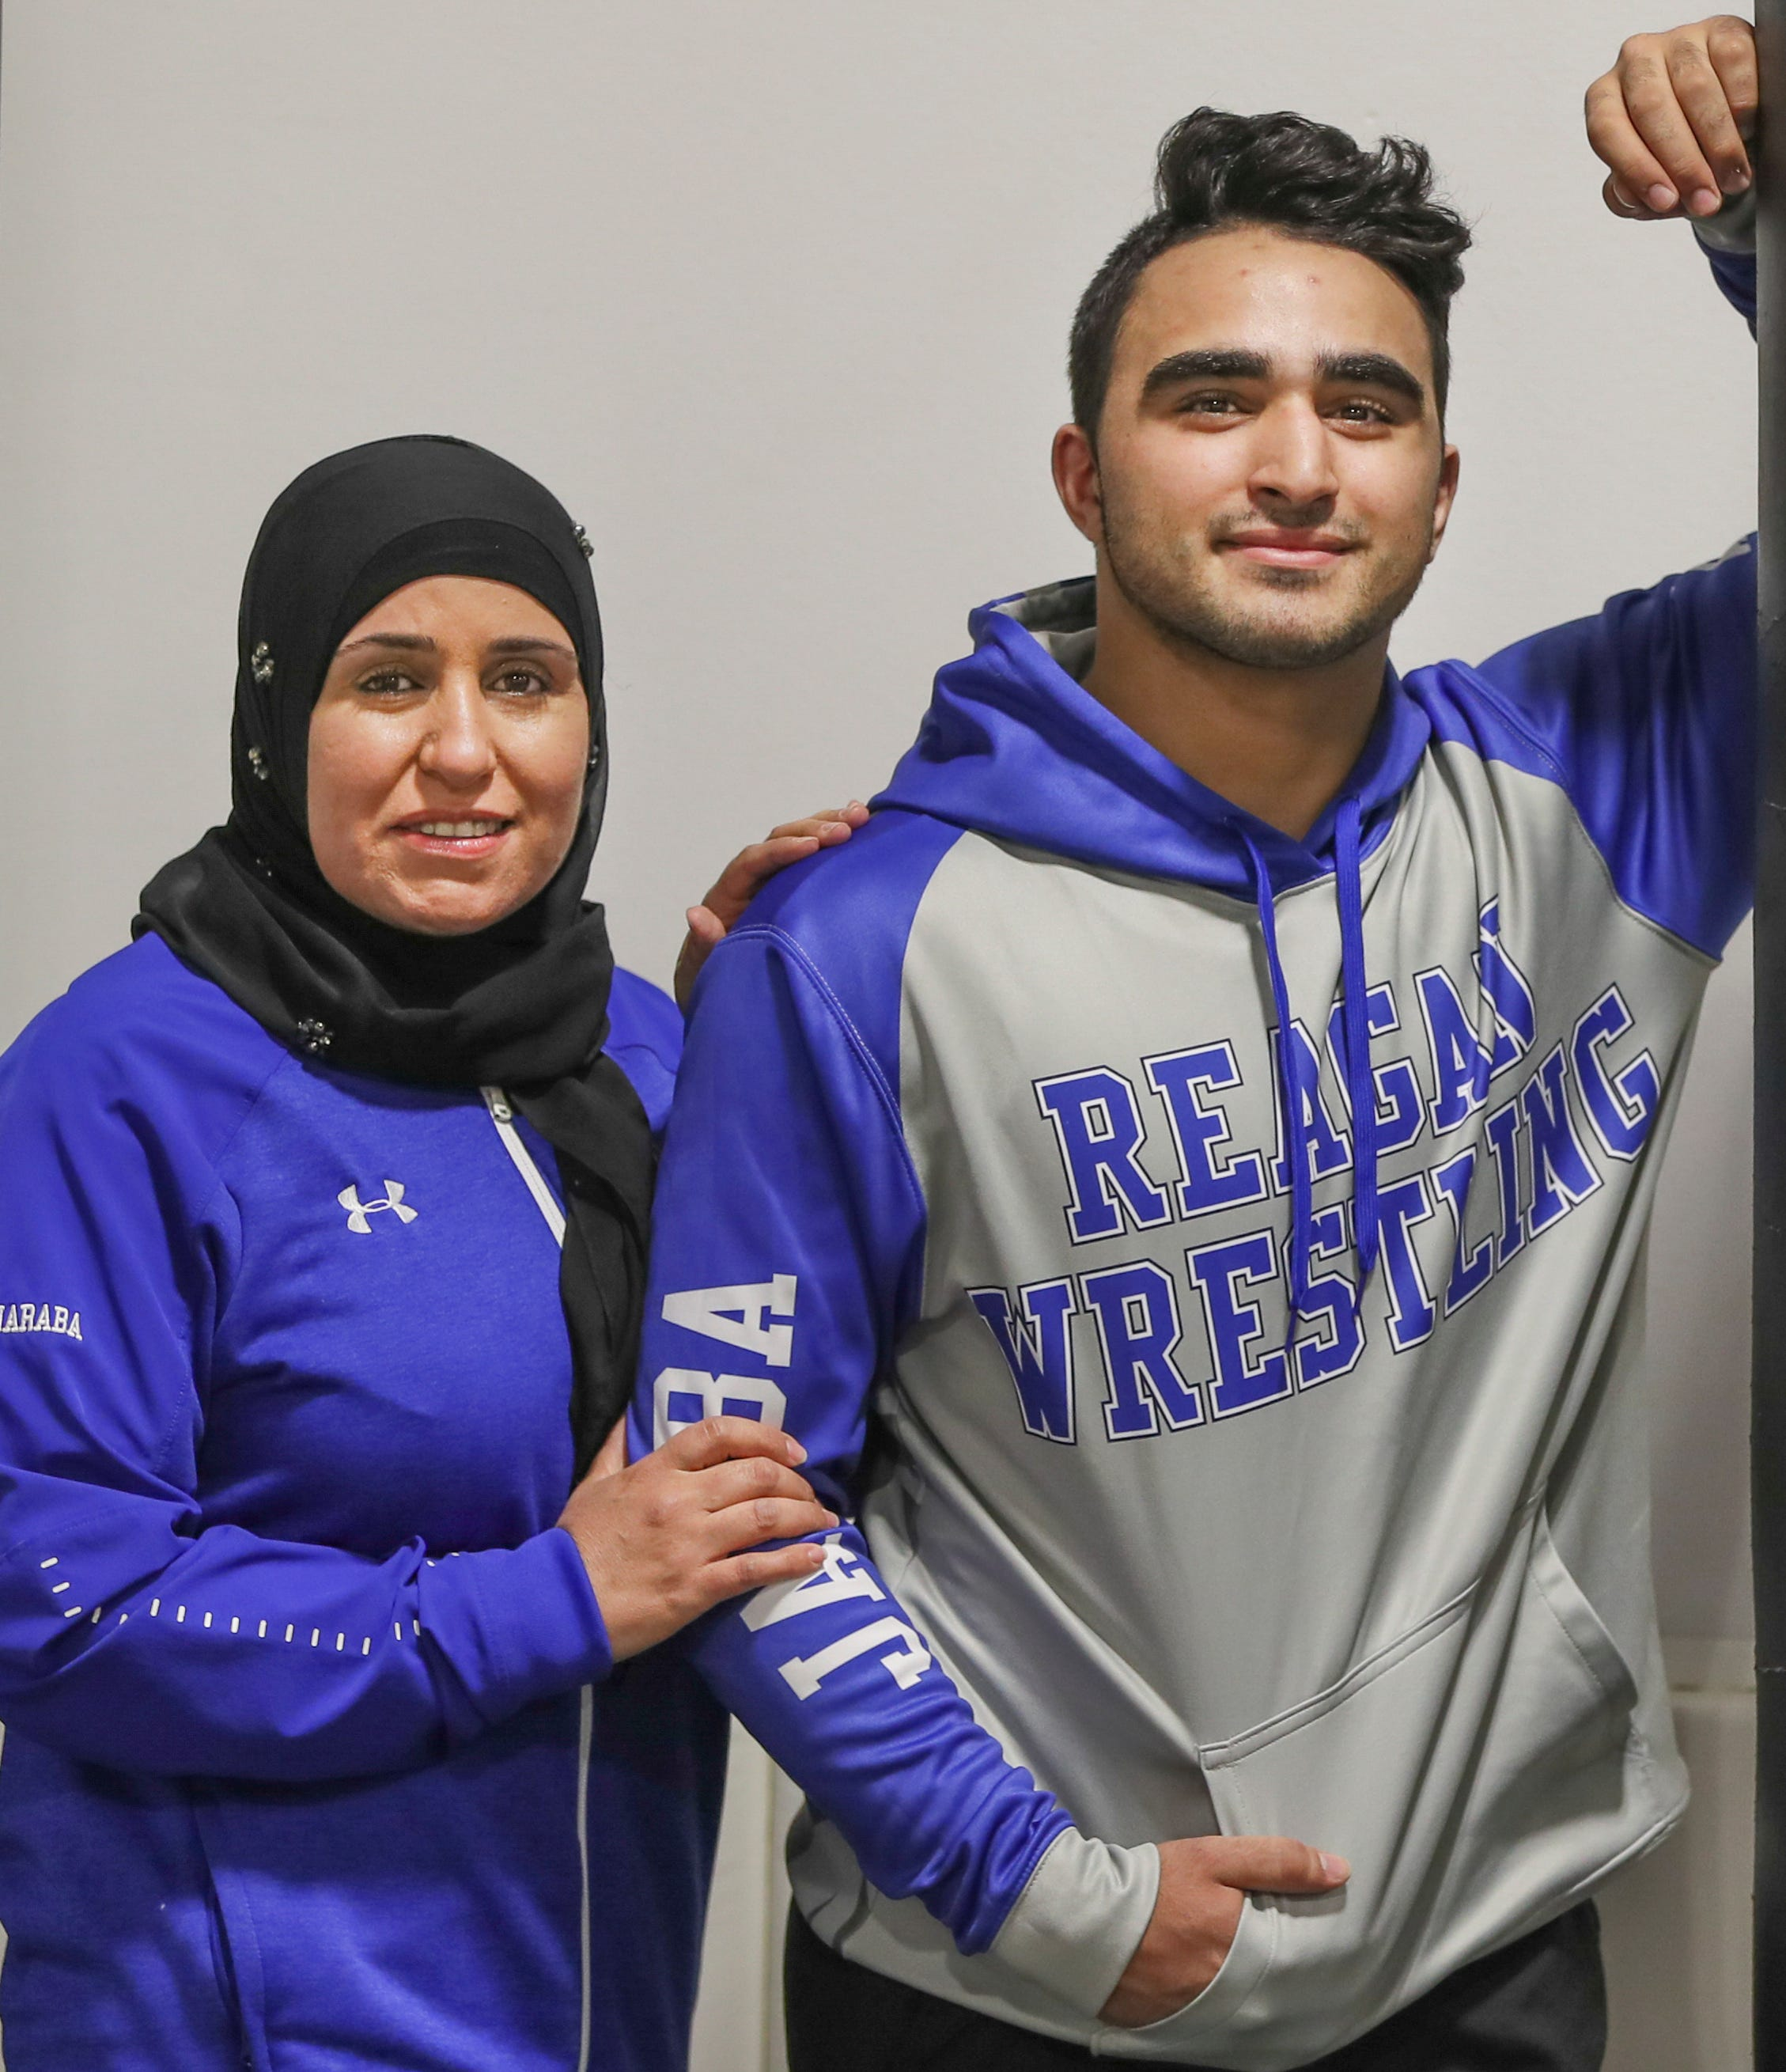 Renad Jaraba poses for a portrait with her 17-year-old son Layth April 13, 2021, at Pure Vida BBJ and MMA in Milwaukee.